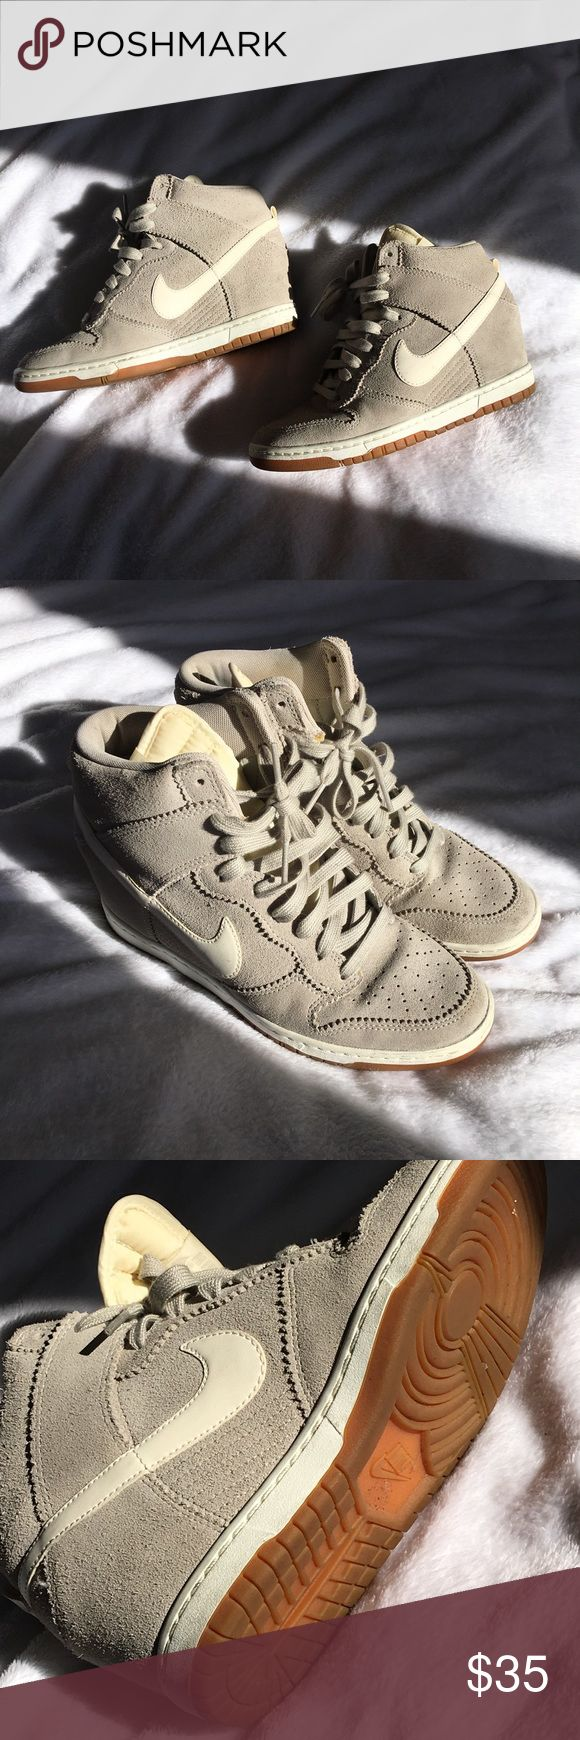 Nike Dunk Sky Hi Sneaker Wedges Nike Dunk Sky Hi Sneaker wedges, super comfortable and fit true to size! A few scuffs as you fan see, but they still look amazing. grey suede with white leather checks. Nike Shoes Sneakers